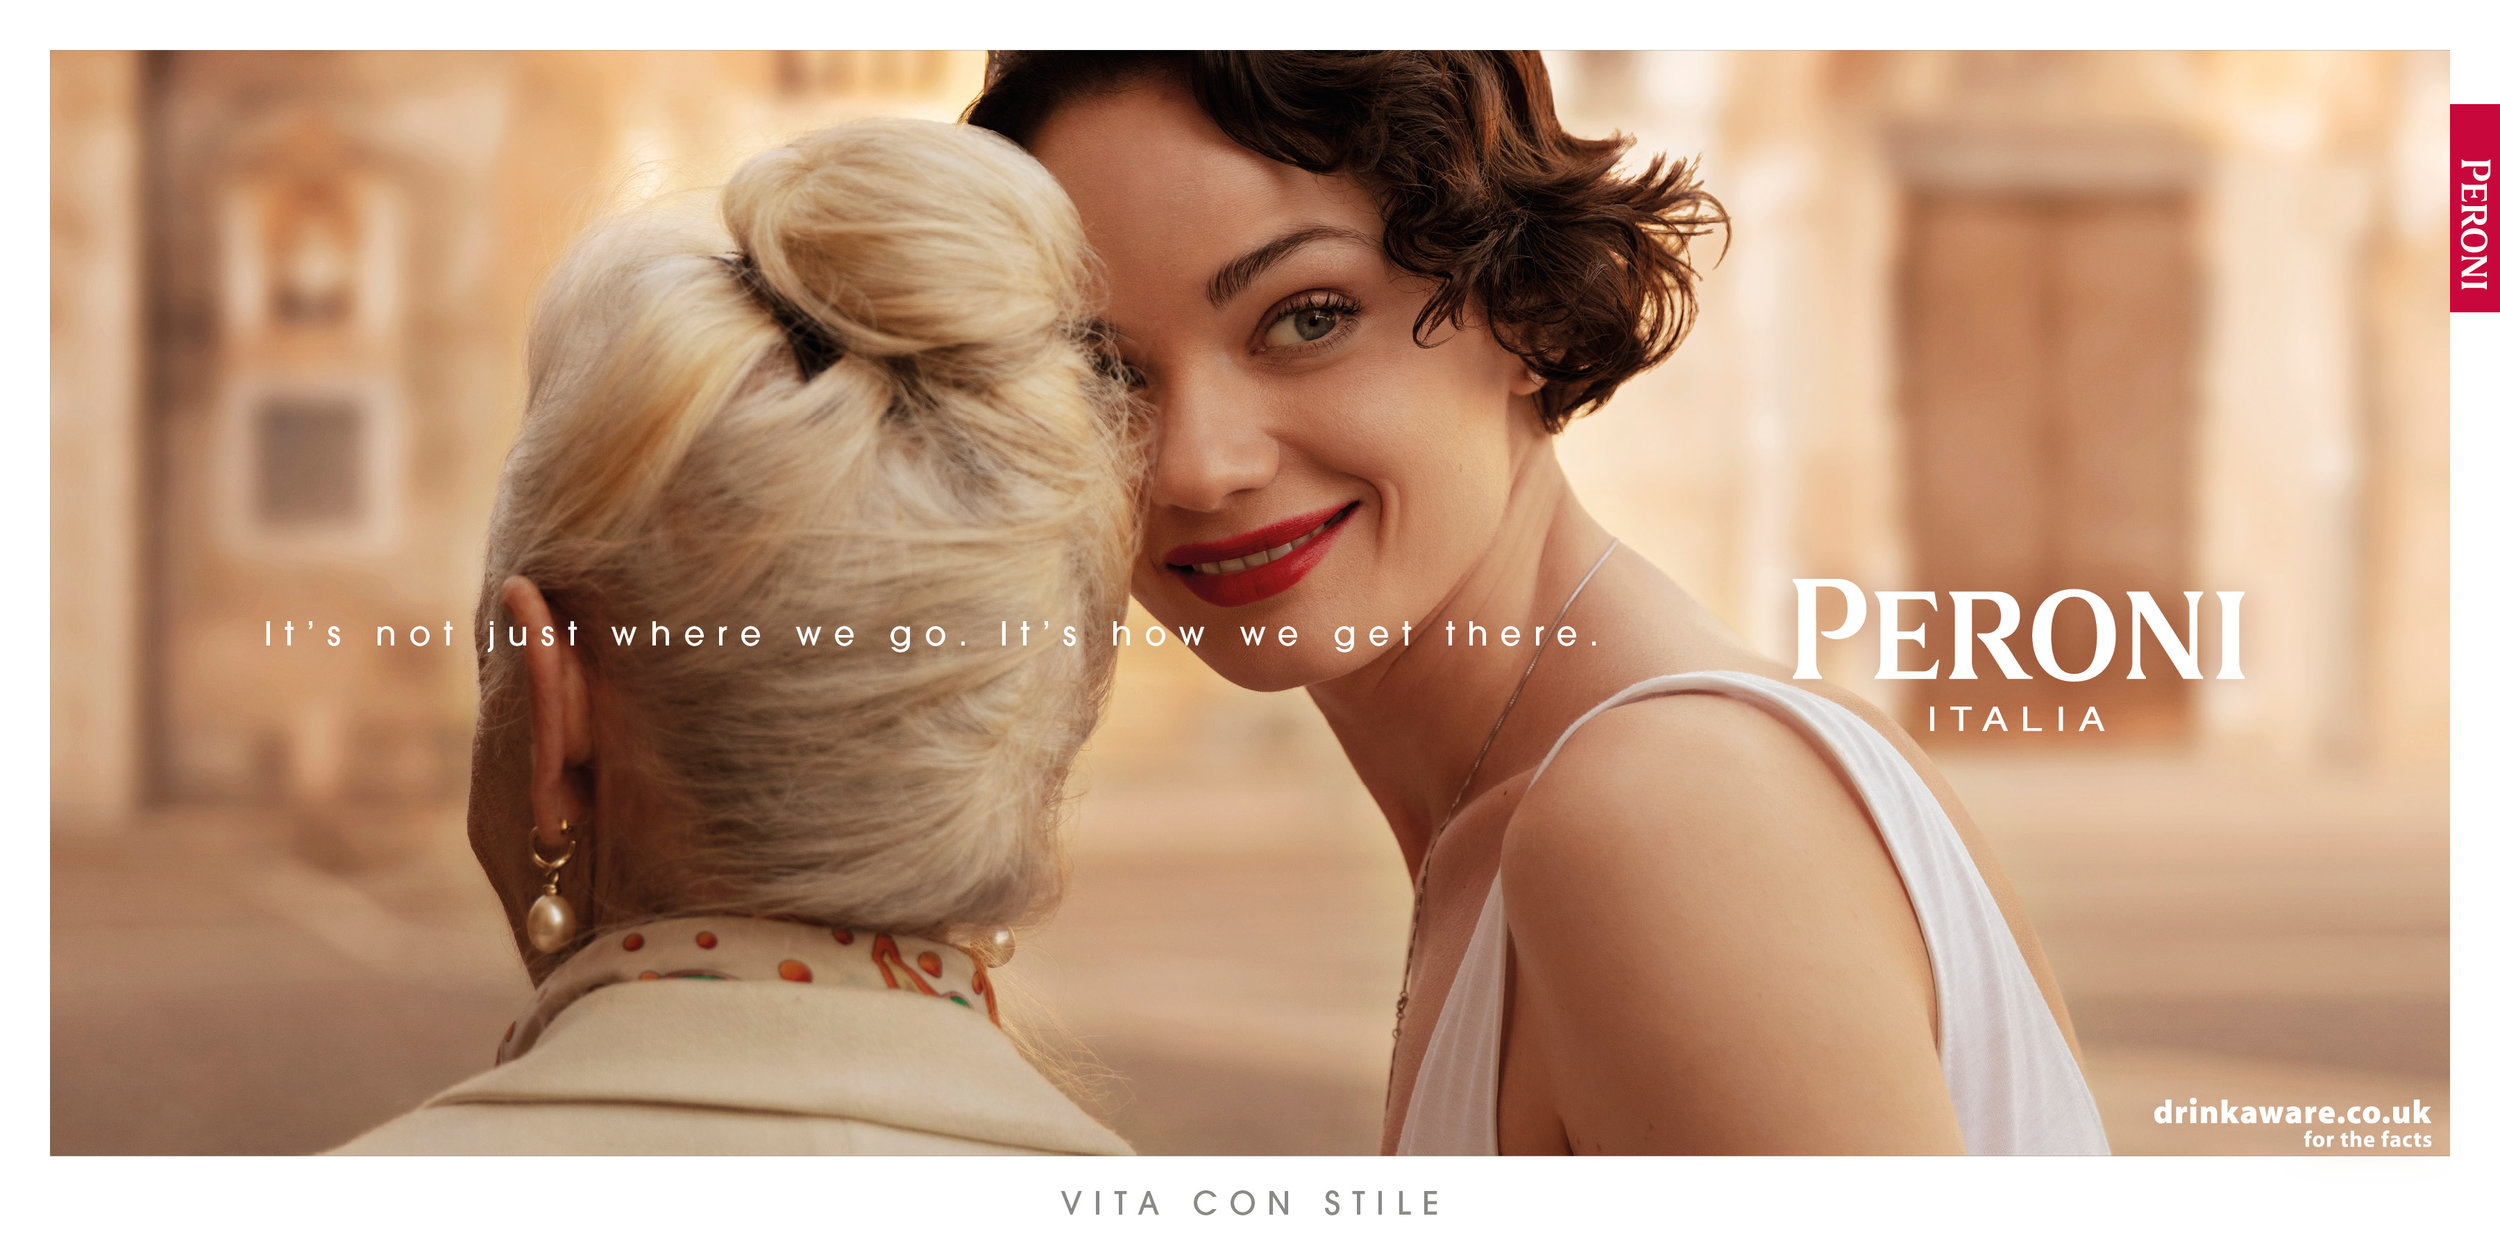 Moving to 'true style' with PNA's new campaign